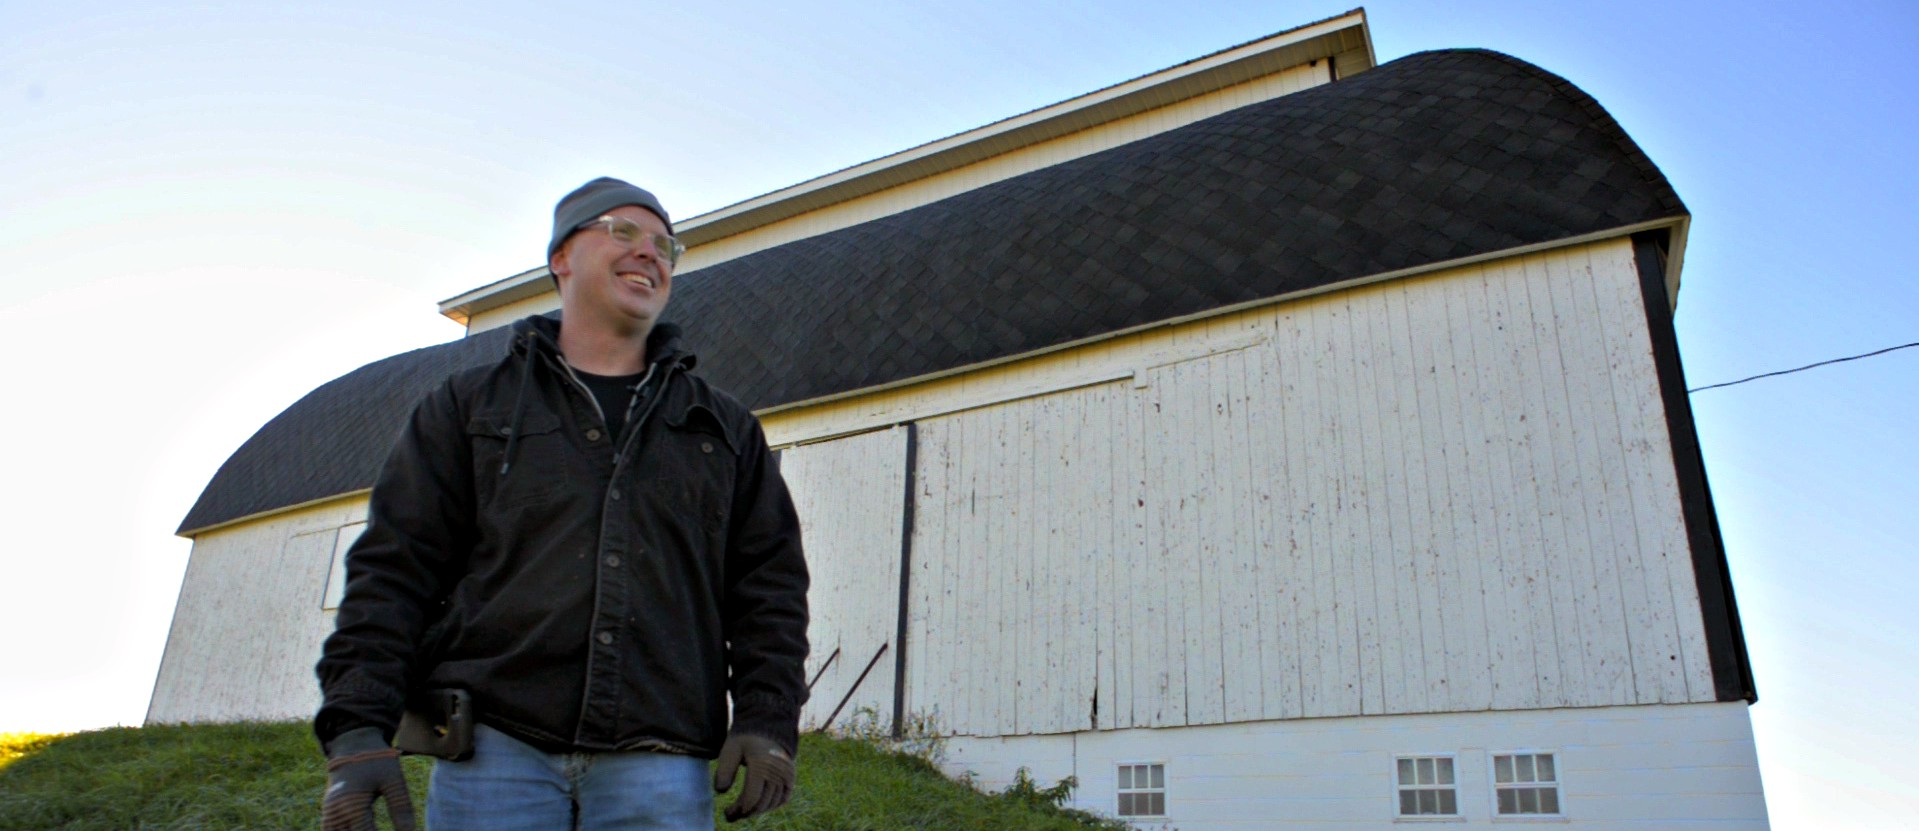 jimmy-barnwood-hovey-in-front-of-barn.jpg